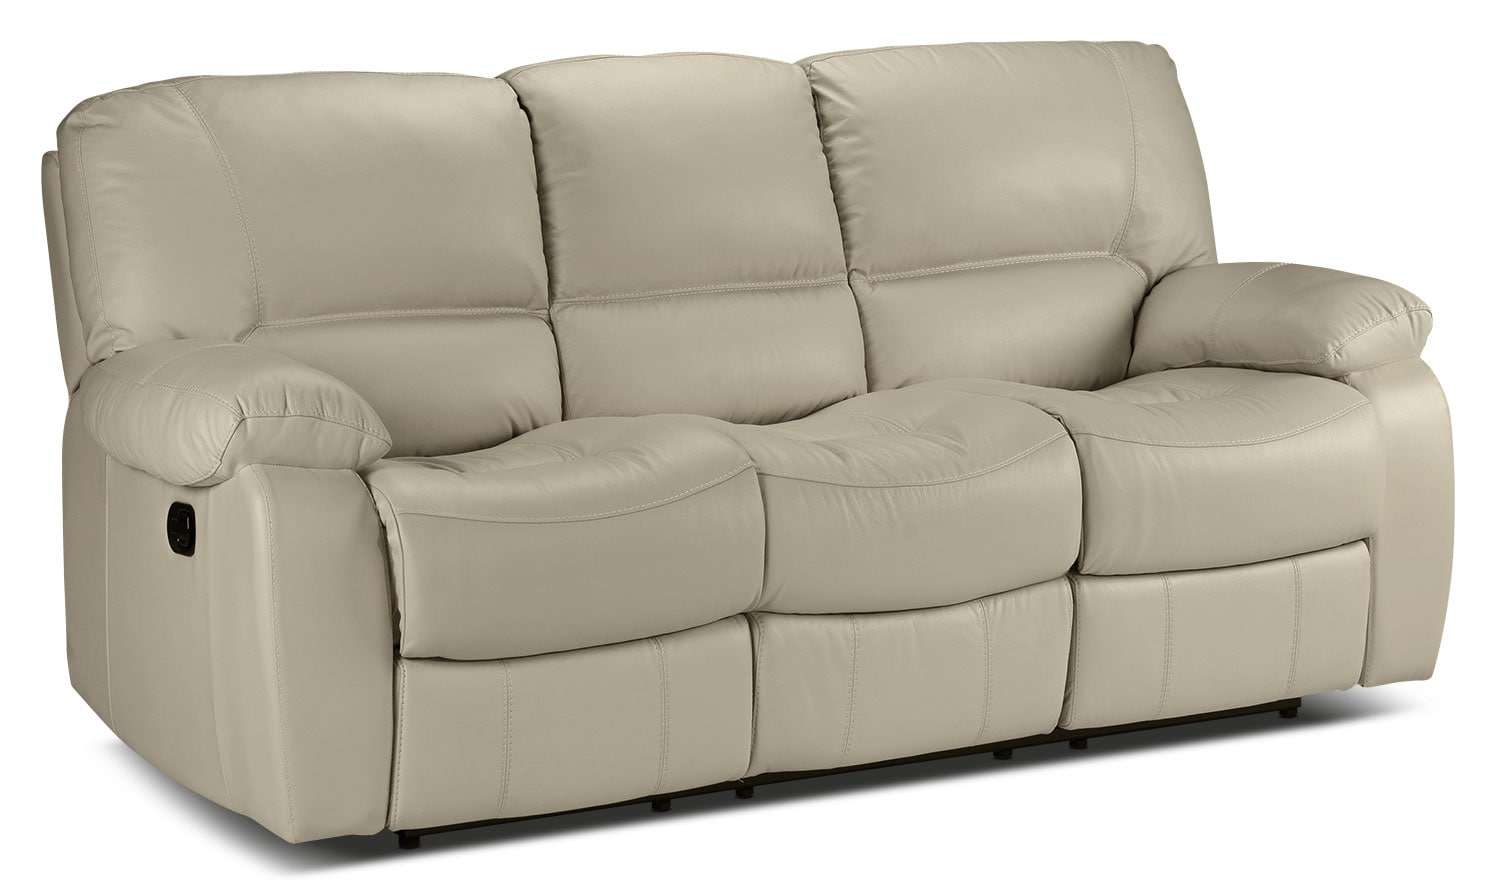 Piermont Reclining Sofa - Silver Grey